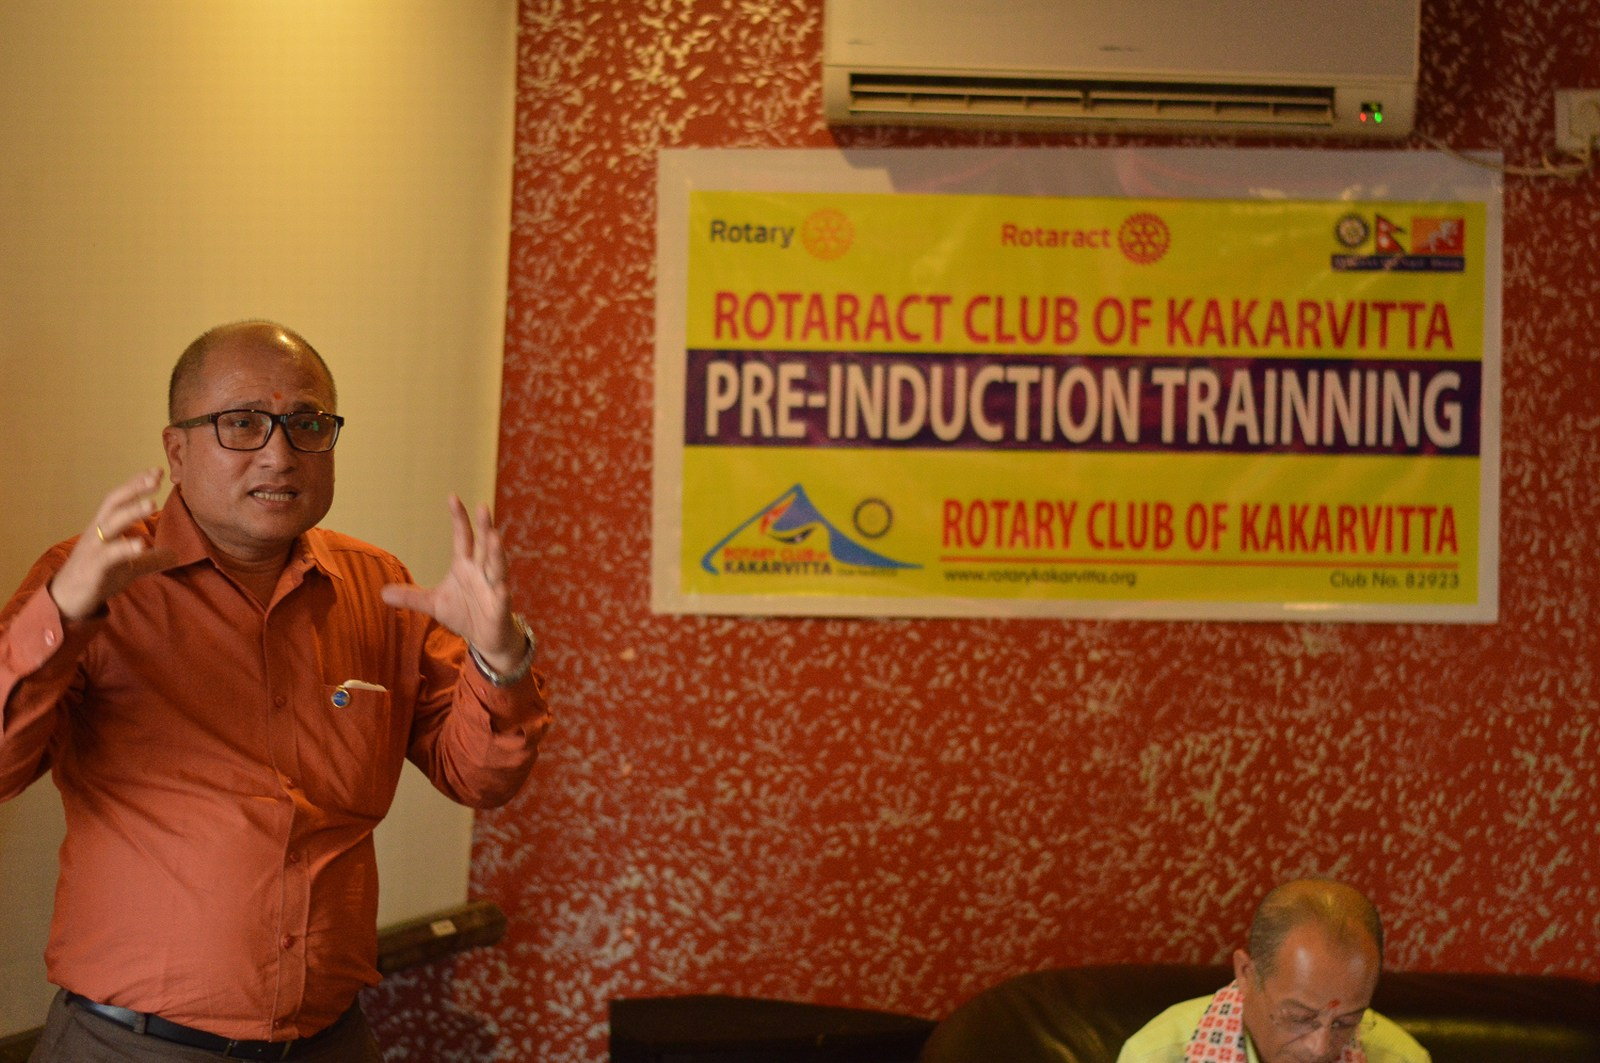 Pre-Induction-Training-of-Rotaract-Club-of-Kakarvitta-Rotary-Club-of-Kakarvitta-31